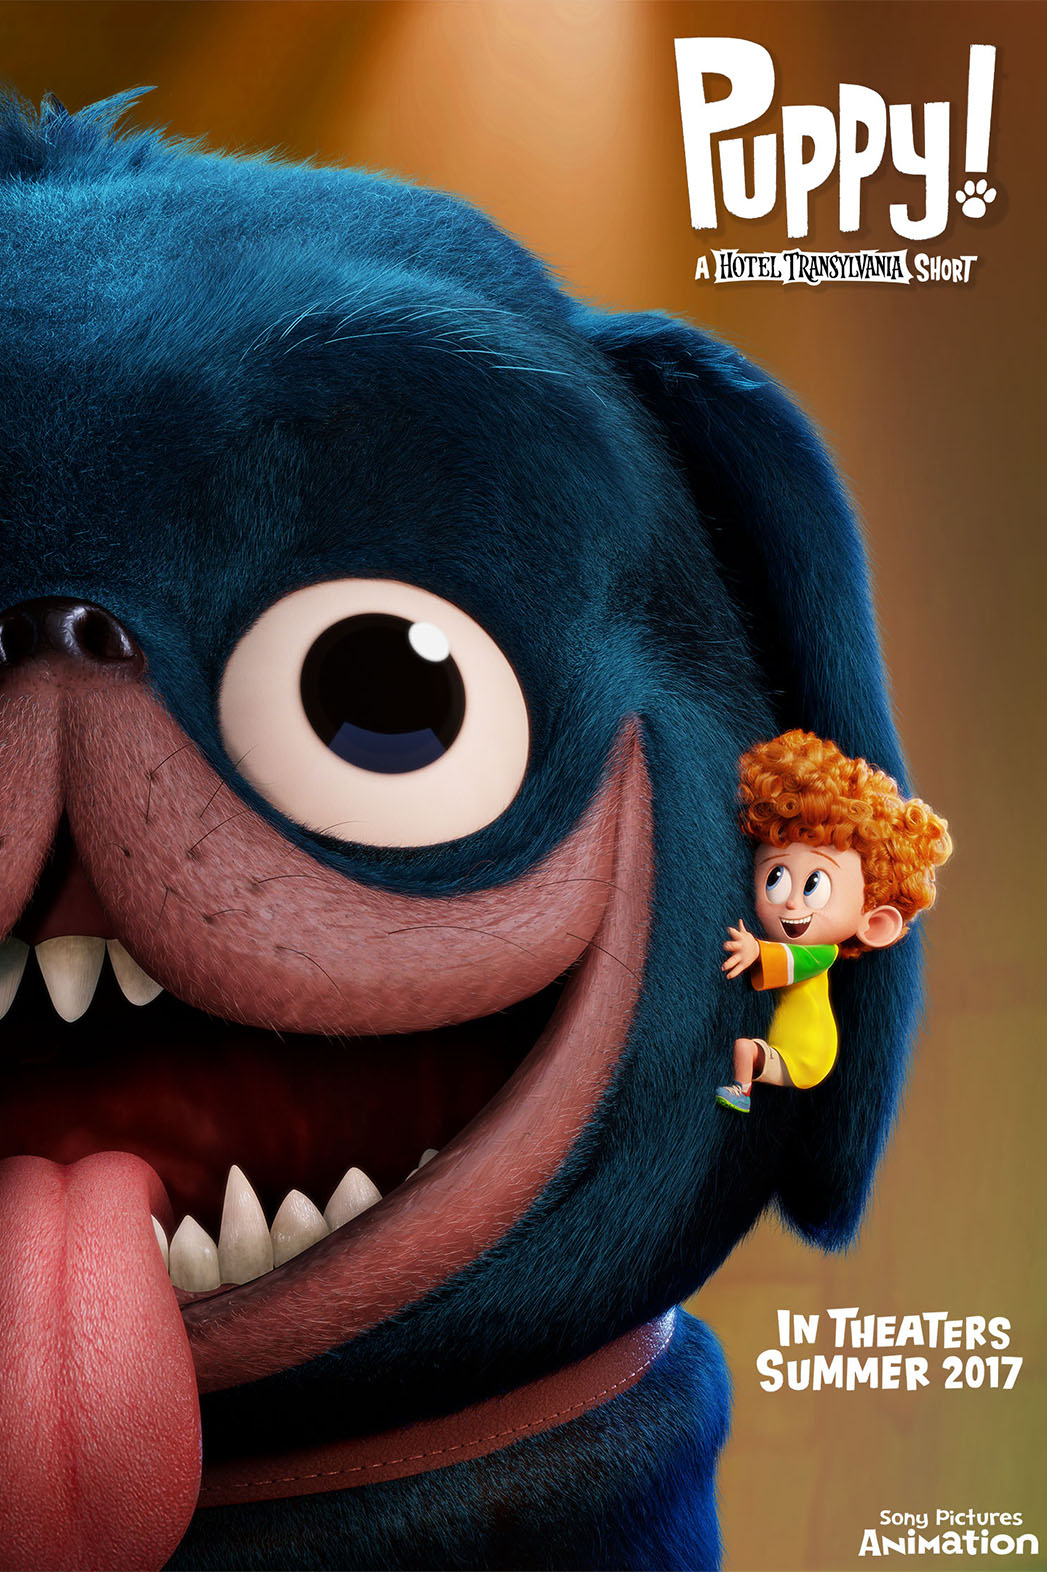 Puppy Hotel Transylvania Wiki Fandom Powered By Wikia